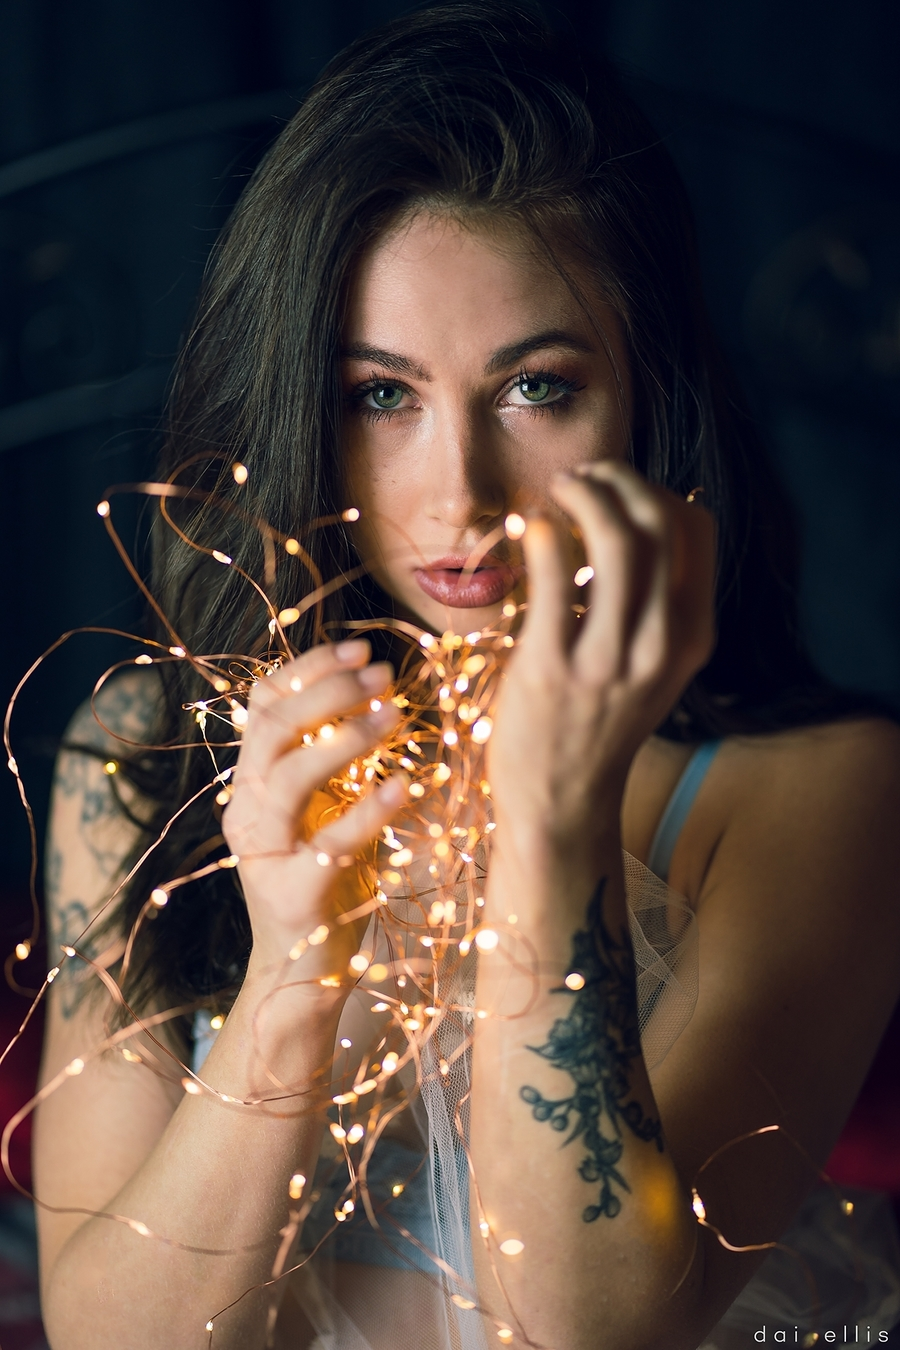 Let her sparkle / Photography by Dai Ellis, Model Nico Dee, Taken at Map Studios / Uploaded 15th December 2018 @ 04:15 PM